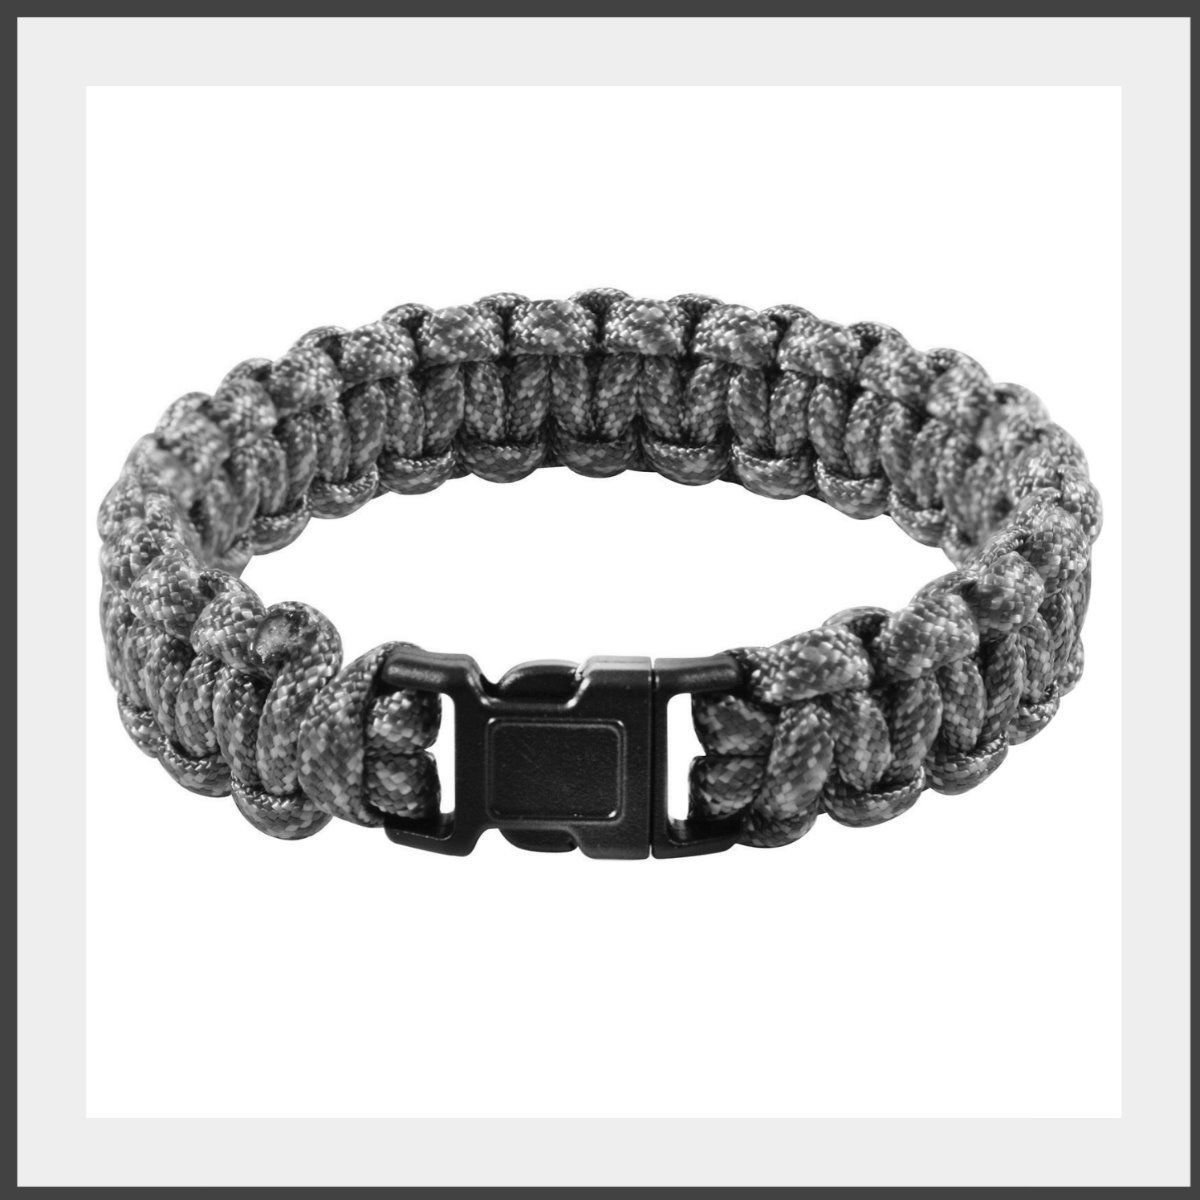 Rothco Multi-Colored Paracord Bracelet 9 inch Foliage Green 932